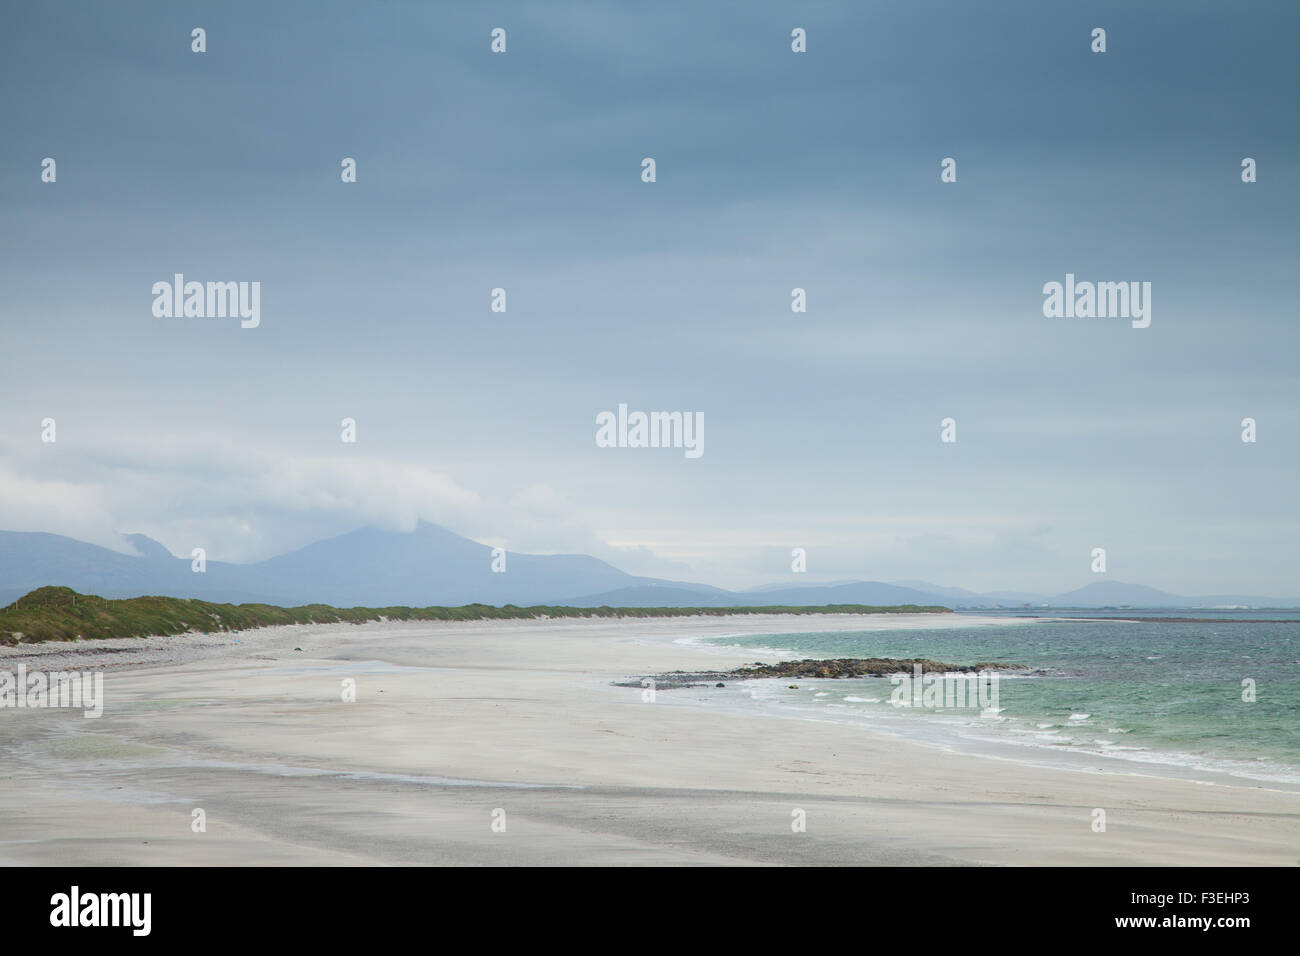 The white sands of a beach on the west coast of South Uist, Outer Hebrides Scotland. - Stock Image